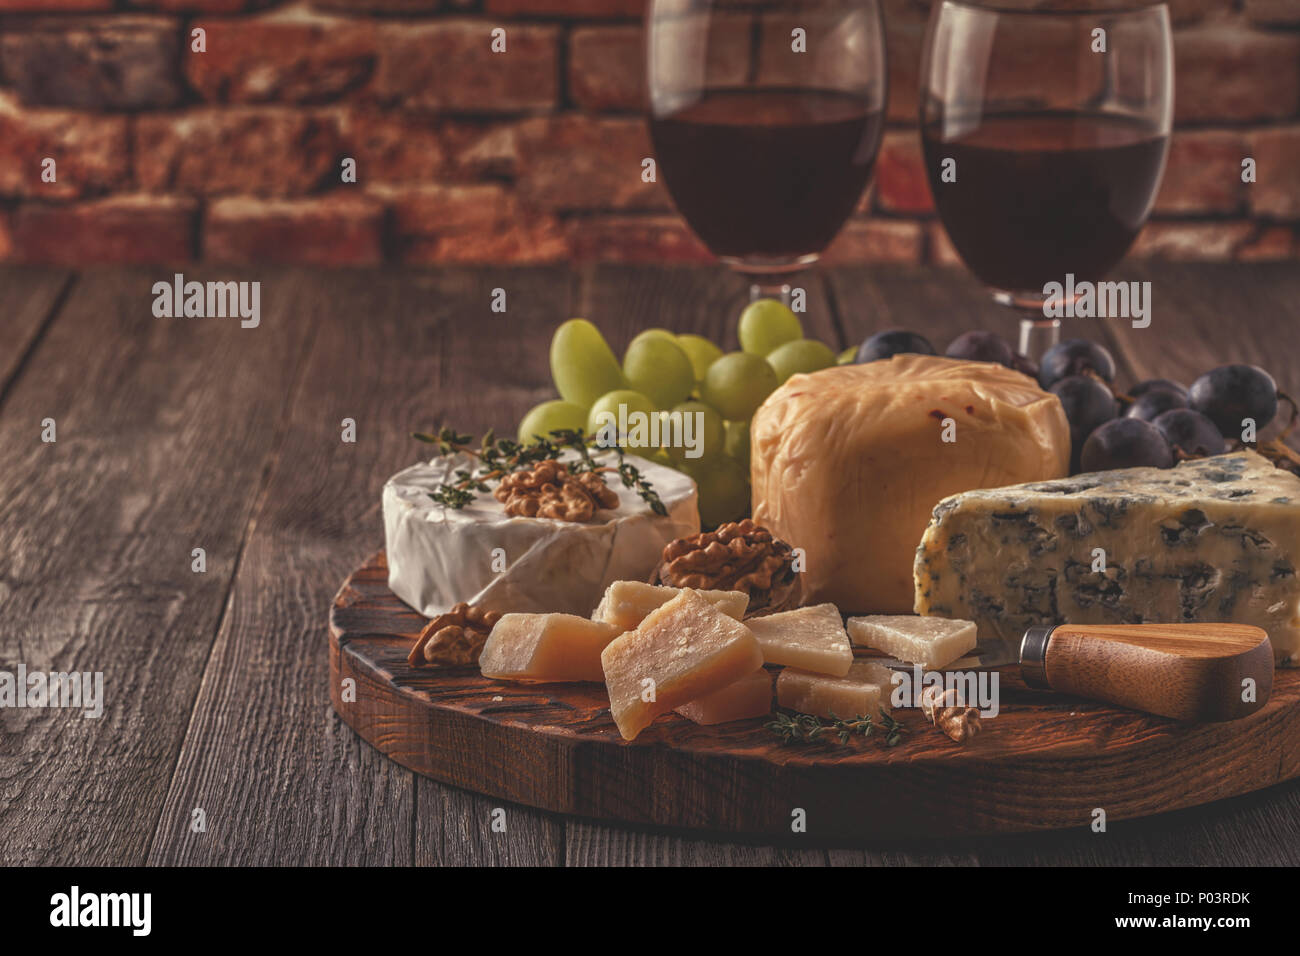 Cheese, nuts, grapes and red wine on wooden background, selective focus. - Stock Image